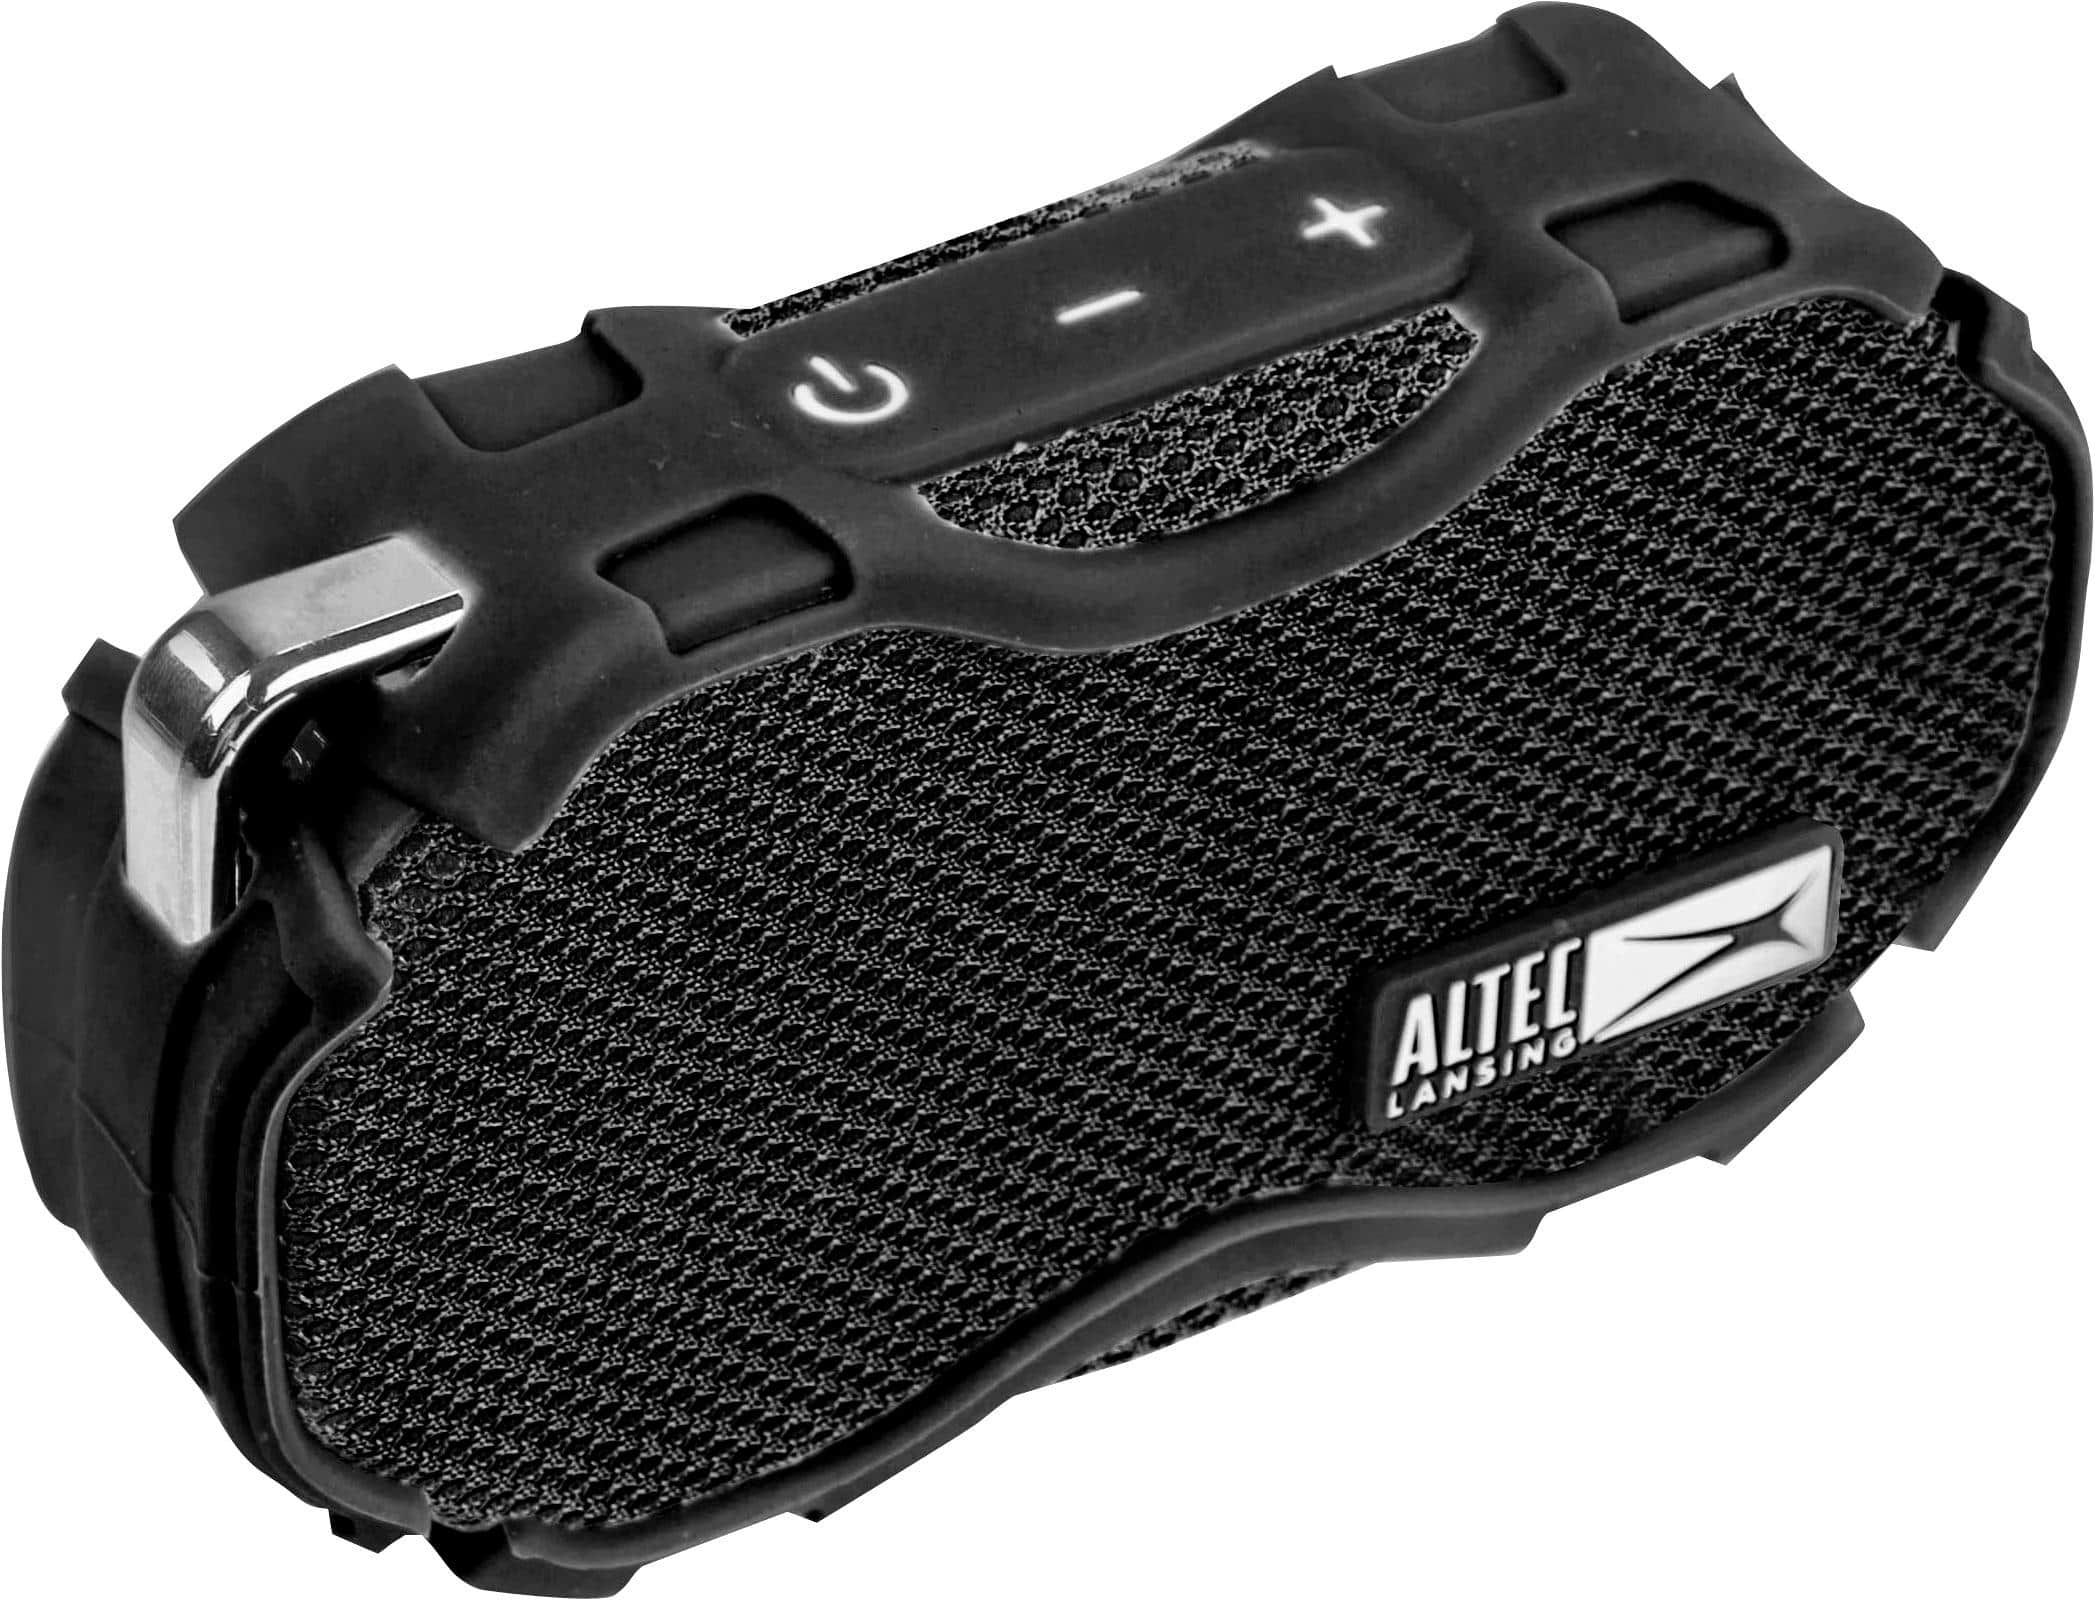 Altec Lansing - Baby Boom Portable Bluetooth Speaker $14.99